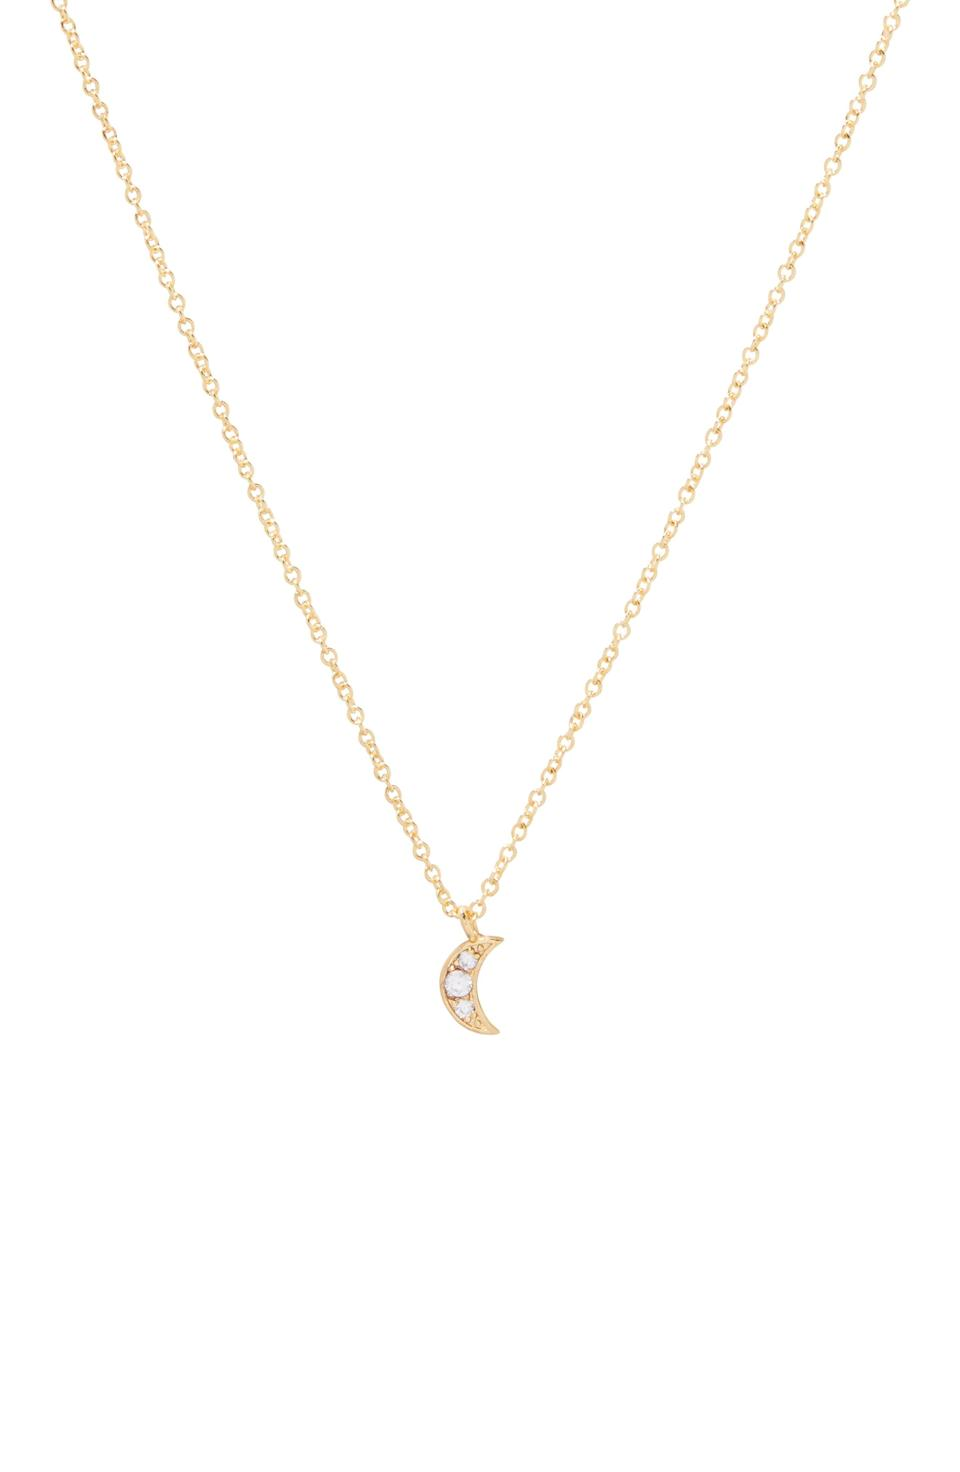 """<p><strong>Gorjana</strong></p><p>nordstrom.com</p><p><strong>$48.00</strong></p><p><a href=""""https://go.redirectingat.com?id=74968X1596630&url=https%3A%2F%2Fwww.nordstrom.com%2Fs%2Fgorjana-moon-charm-pendant-necklace%2F5781028&sref=https%3A%2F%2Fwww.townandcountrymag.com%2Fleisure%2Farts-and-culture%2Fg35091966%2Fdickinson-cottagecore-fashion%2F"""" rel=""""nofollow noopener"""" target=""""_blank"""" data-ylk=""""slk:Shop Now"""" class=""""link rapid-noclick-resp"""">Shop Now</a></p>"""